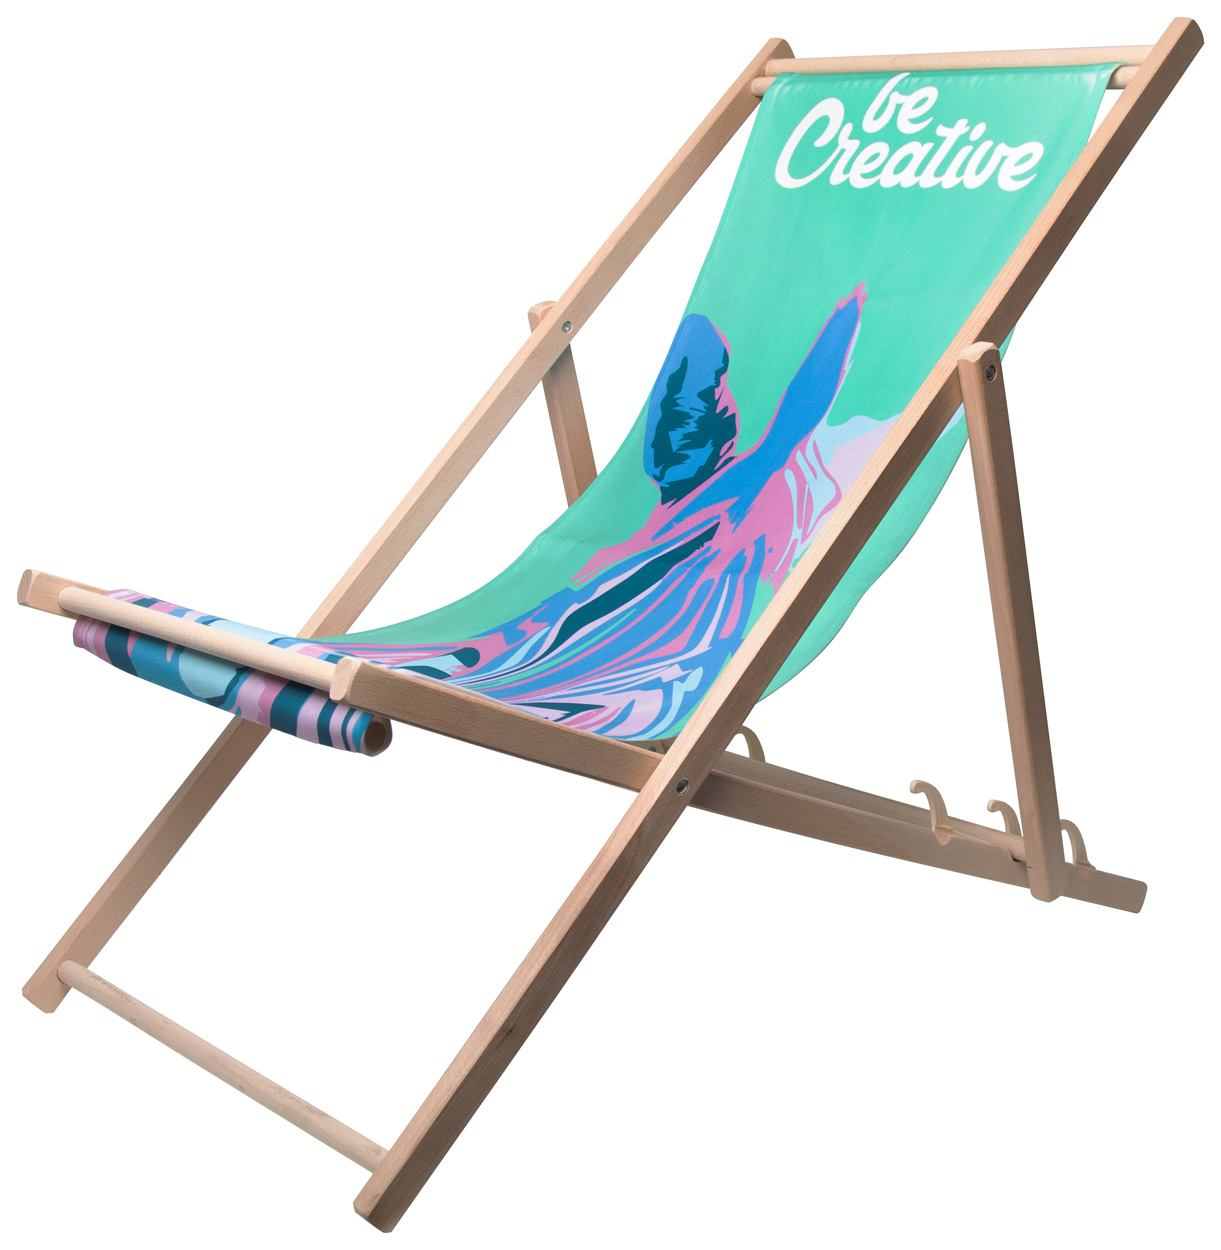 Beach chairsimage